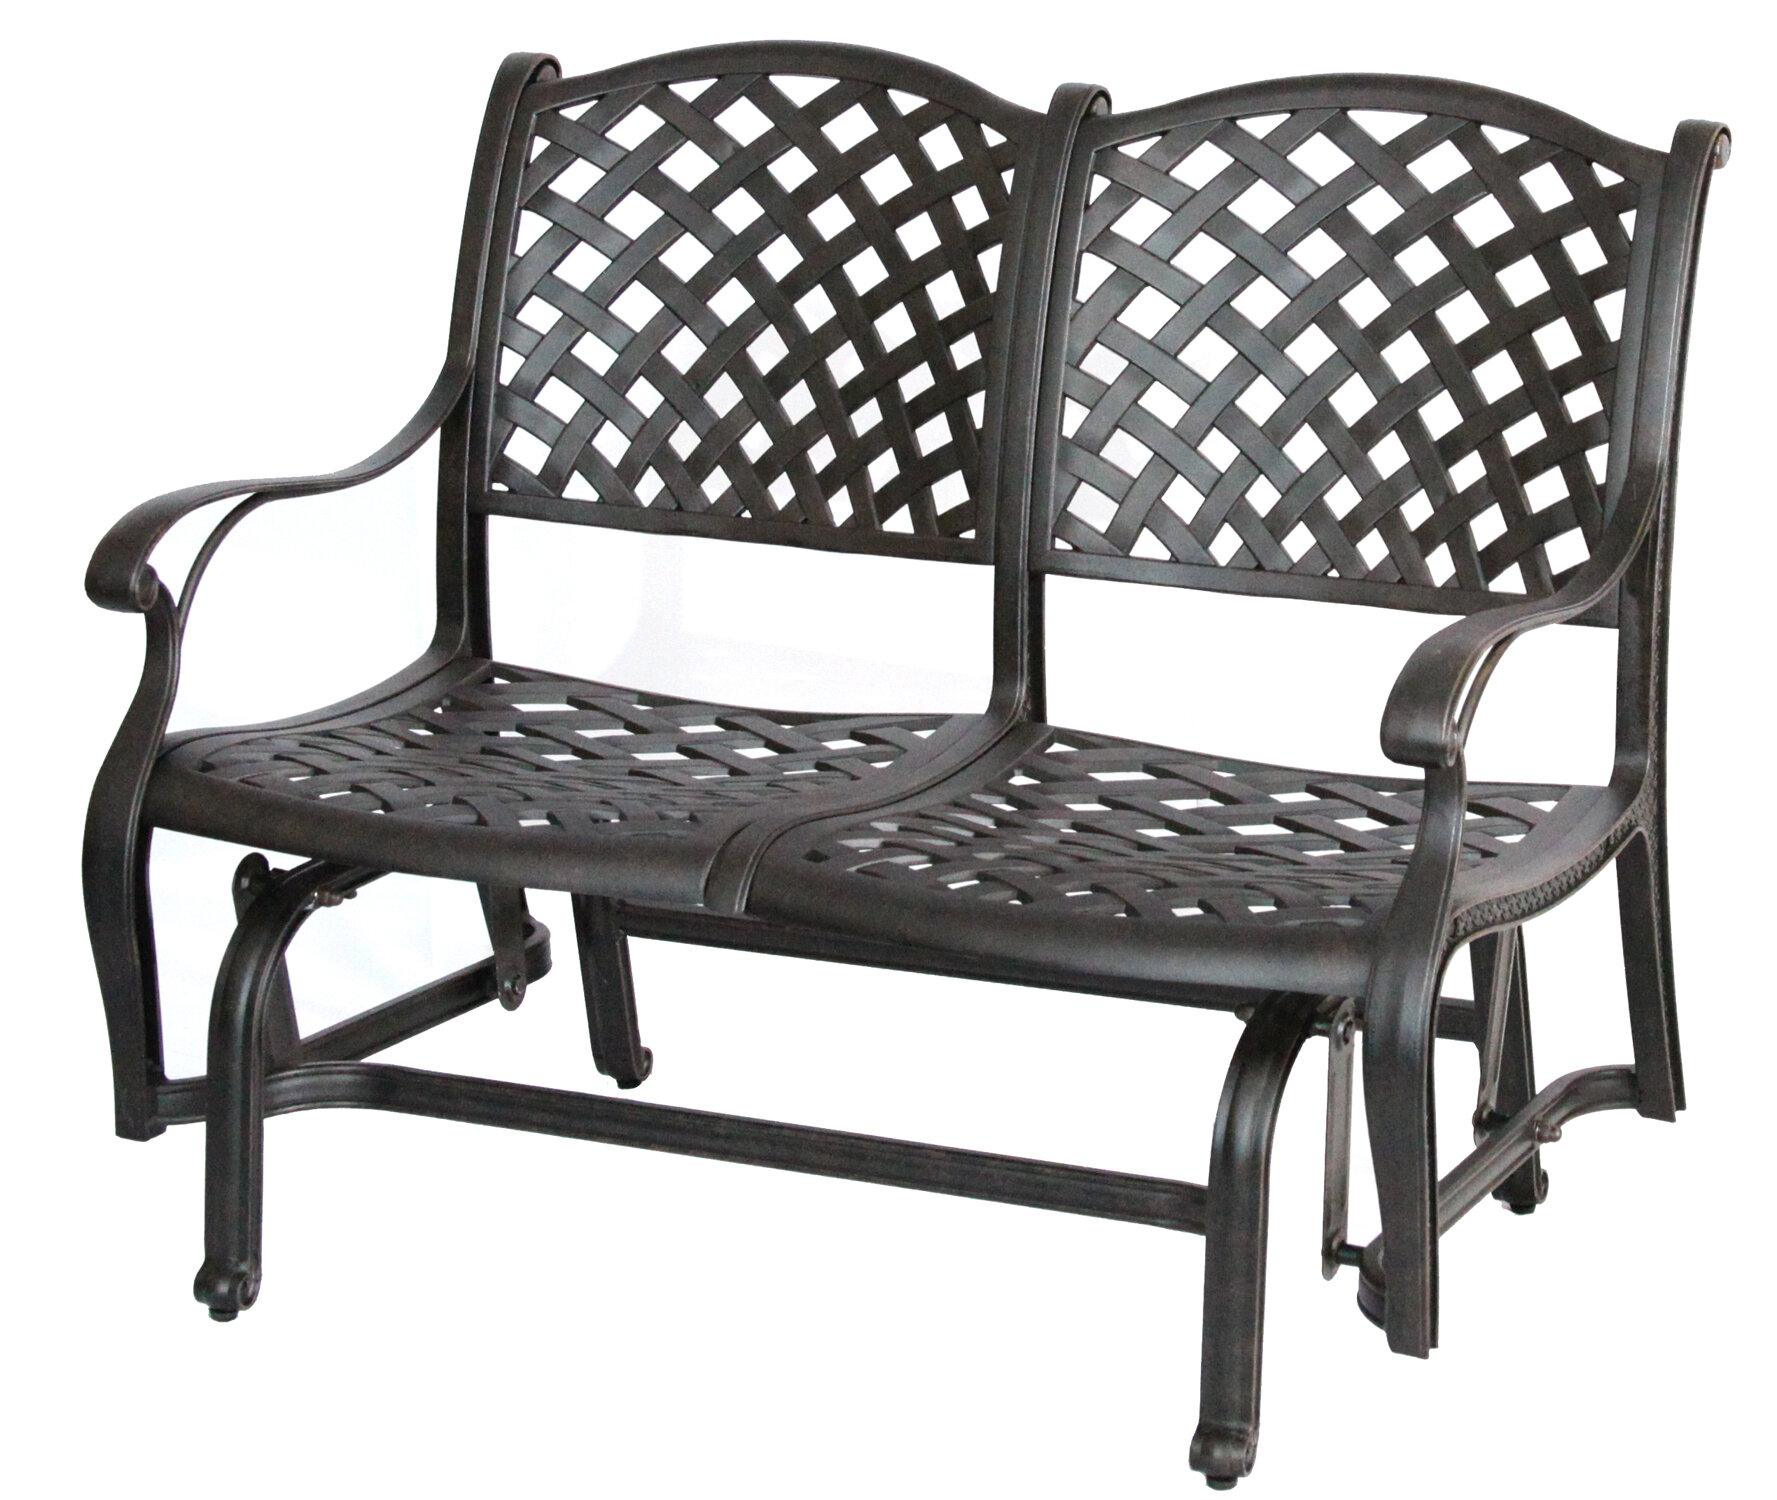 Lincolnville Aluminum Glider Bench With Cushion For Cushioned Glider Benches With Cushions (View 20 of 27)